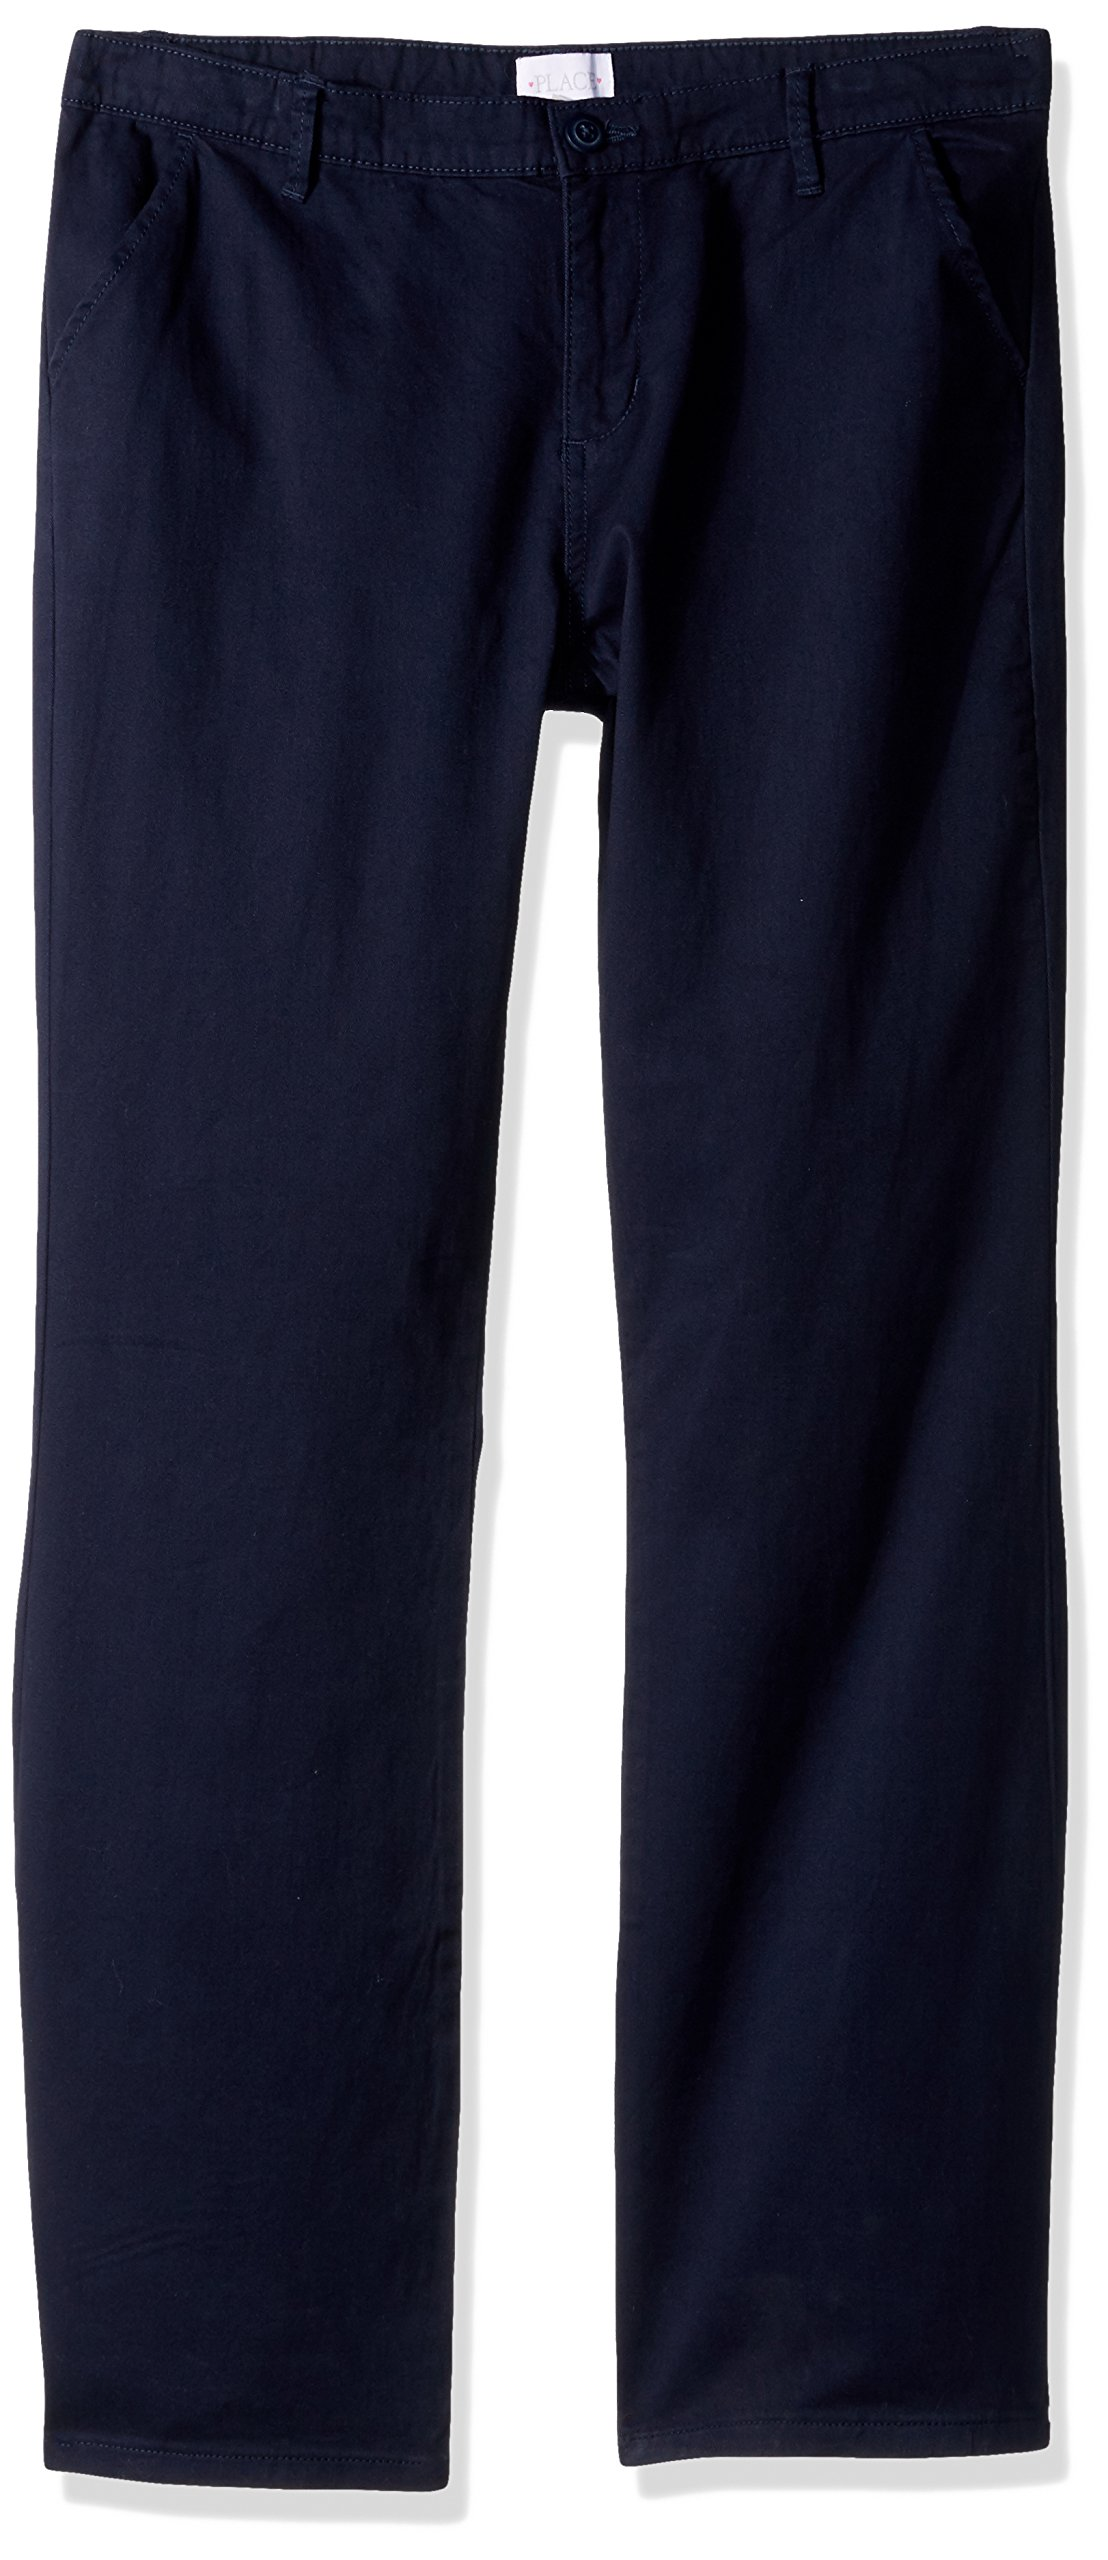 The Children's Place Girls' Big Skinny Uniform Pants, Tidal 4405, 16 Plus by The Children's Place (Image #1)